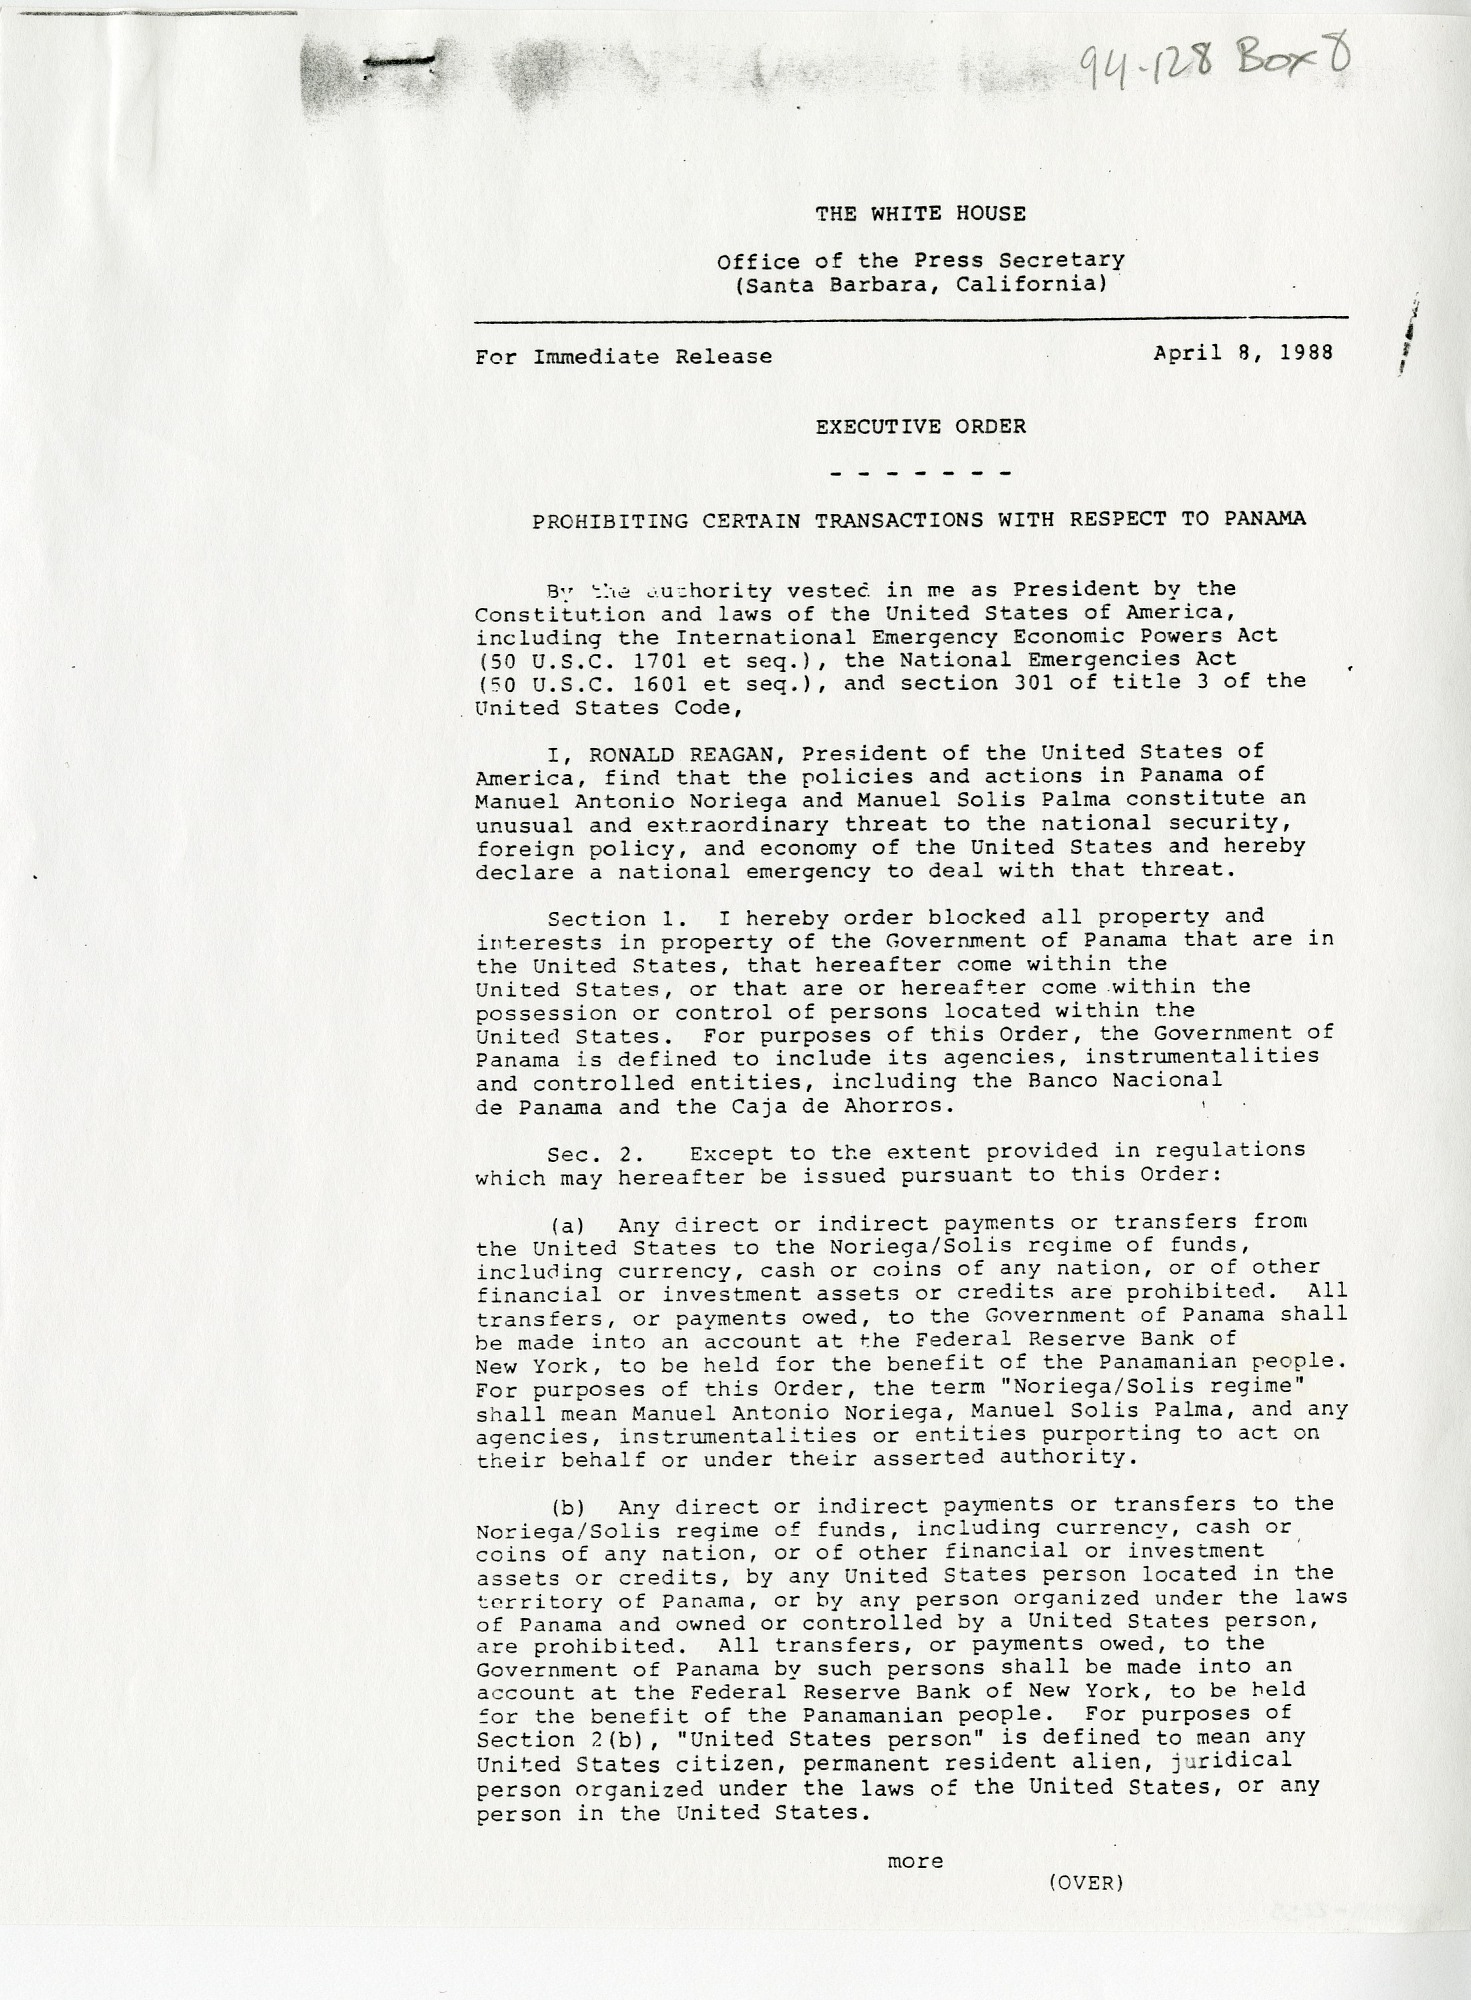 Executive Order 12635, 1988, Smithsonian Archives - History Div, SIA2011-2255, SIA2011-2256.